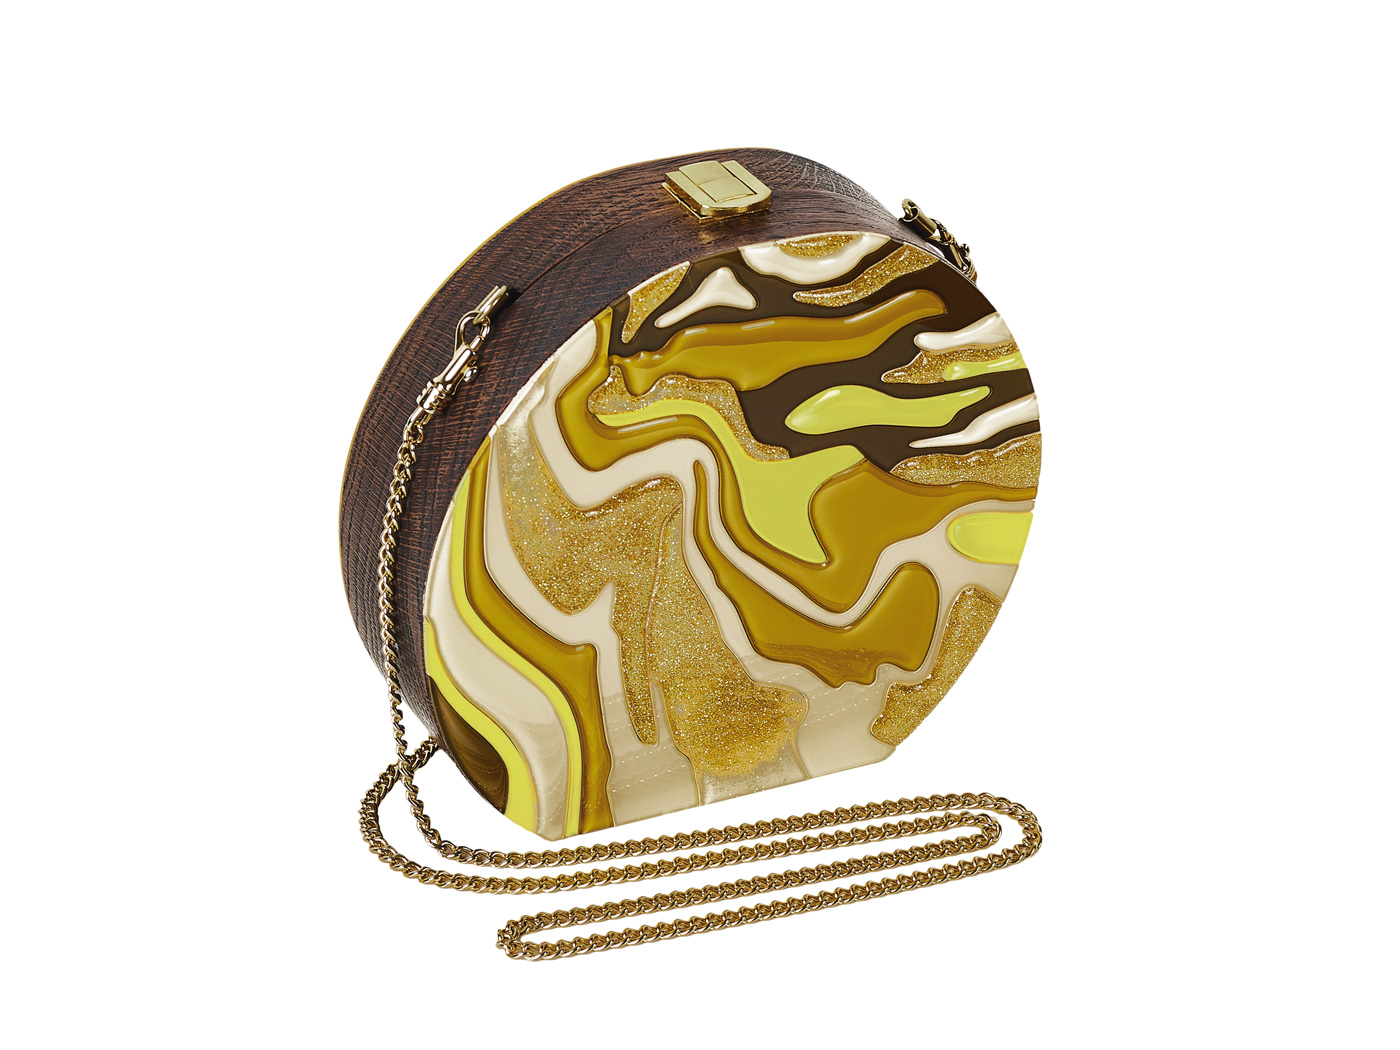 Golovina-marble-clutch-bag-mustard-and-yellow-3